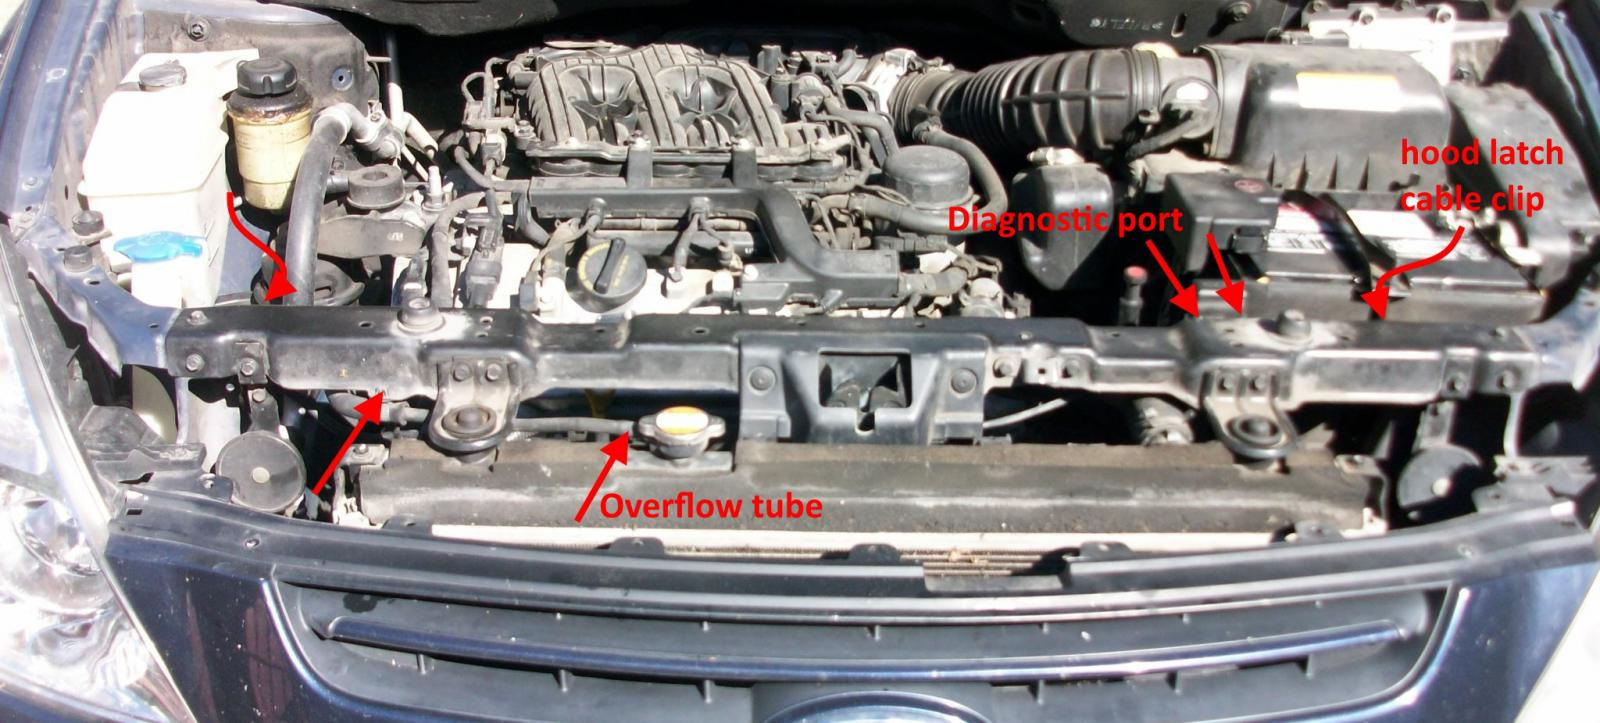 2000 kia sportage wiring diagram farmall cub diy: replacing the front(left) valve cover gasket (part i) - forum